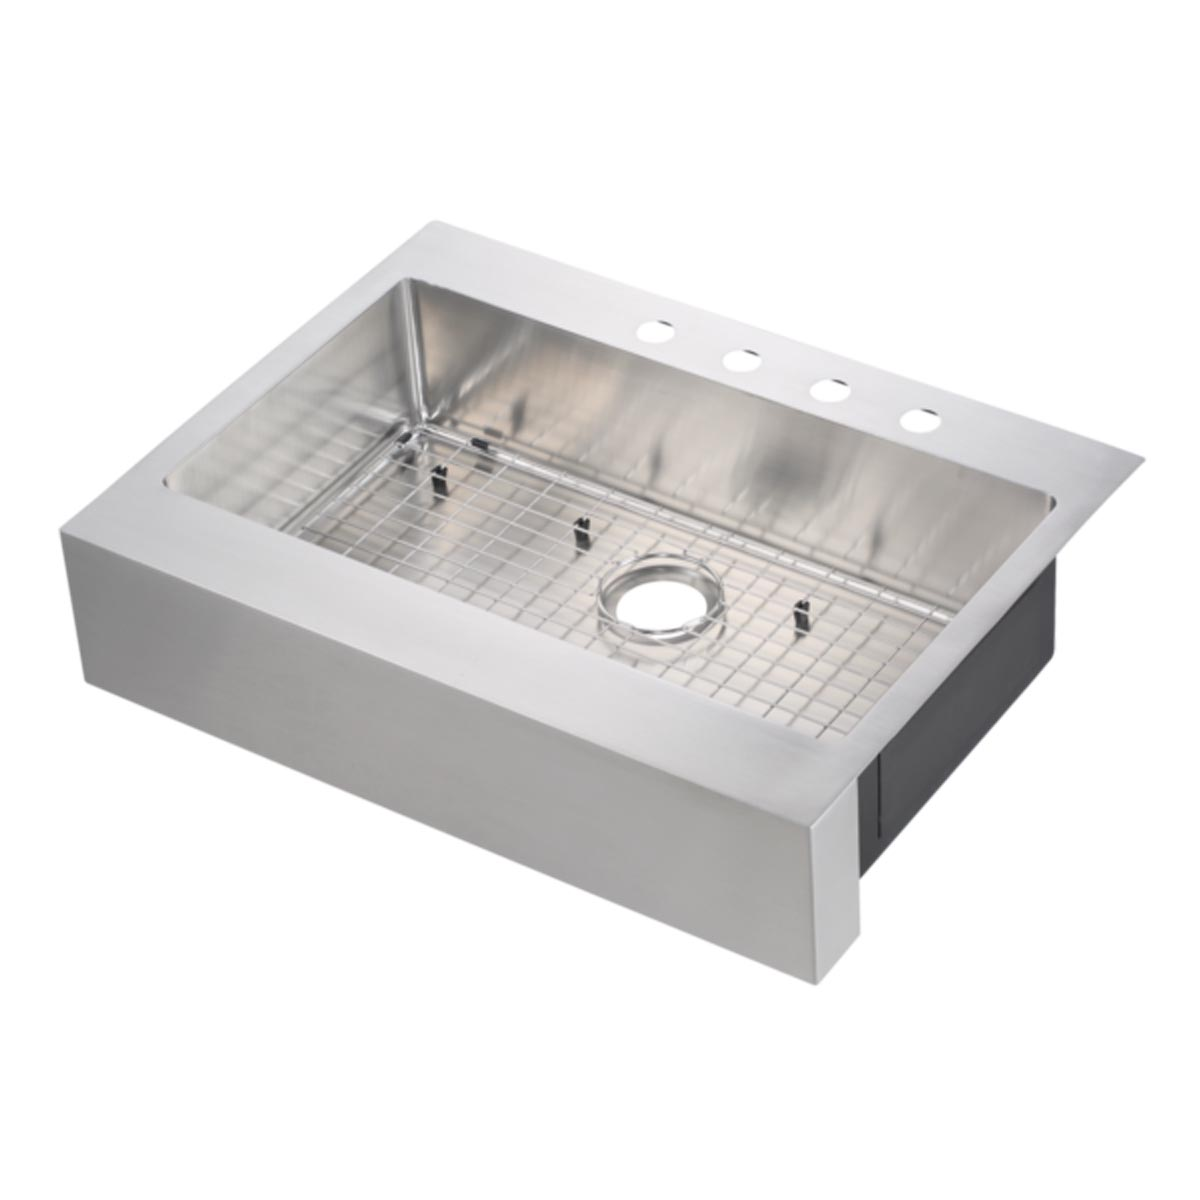 33 x 24 stainless steel farm sink flat apron front